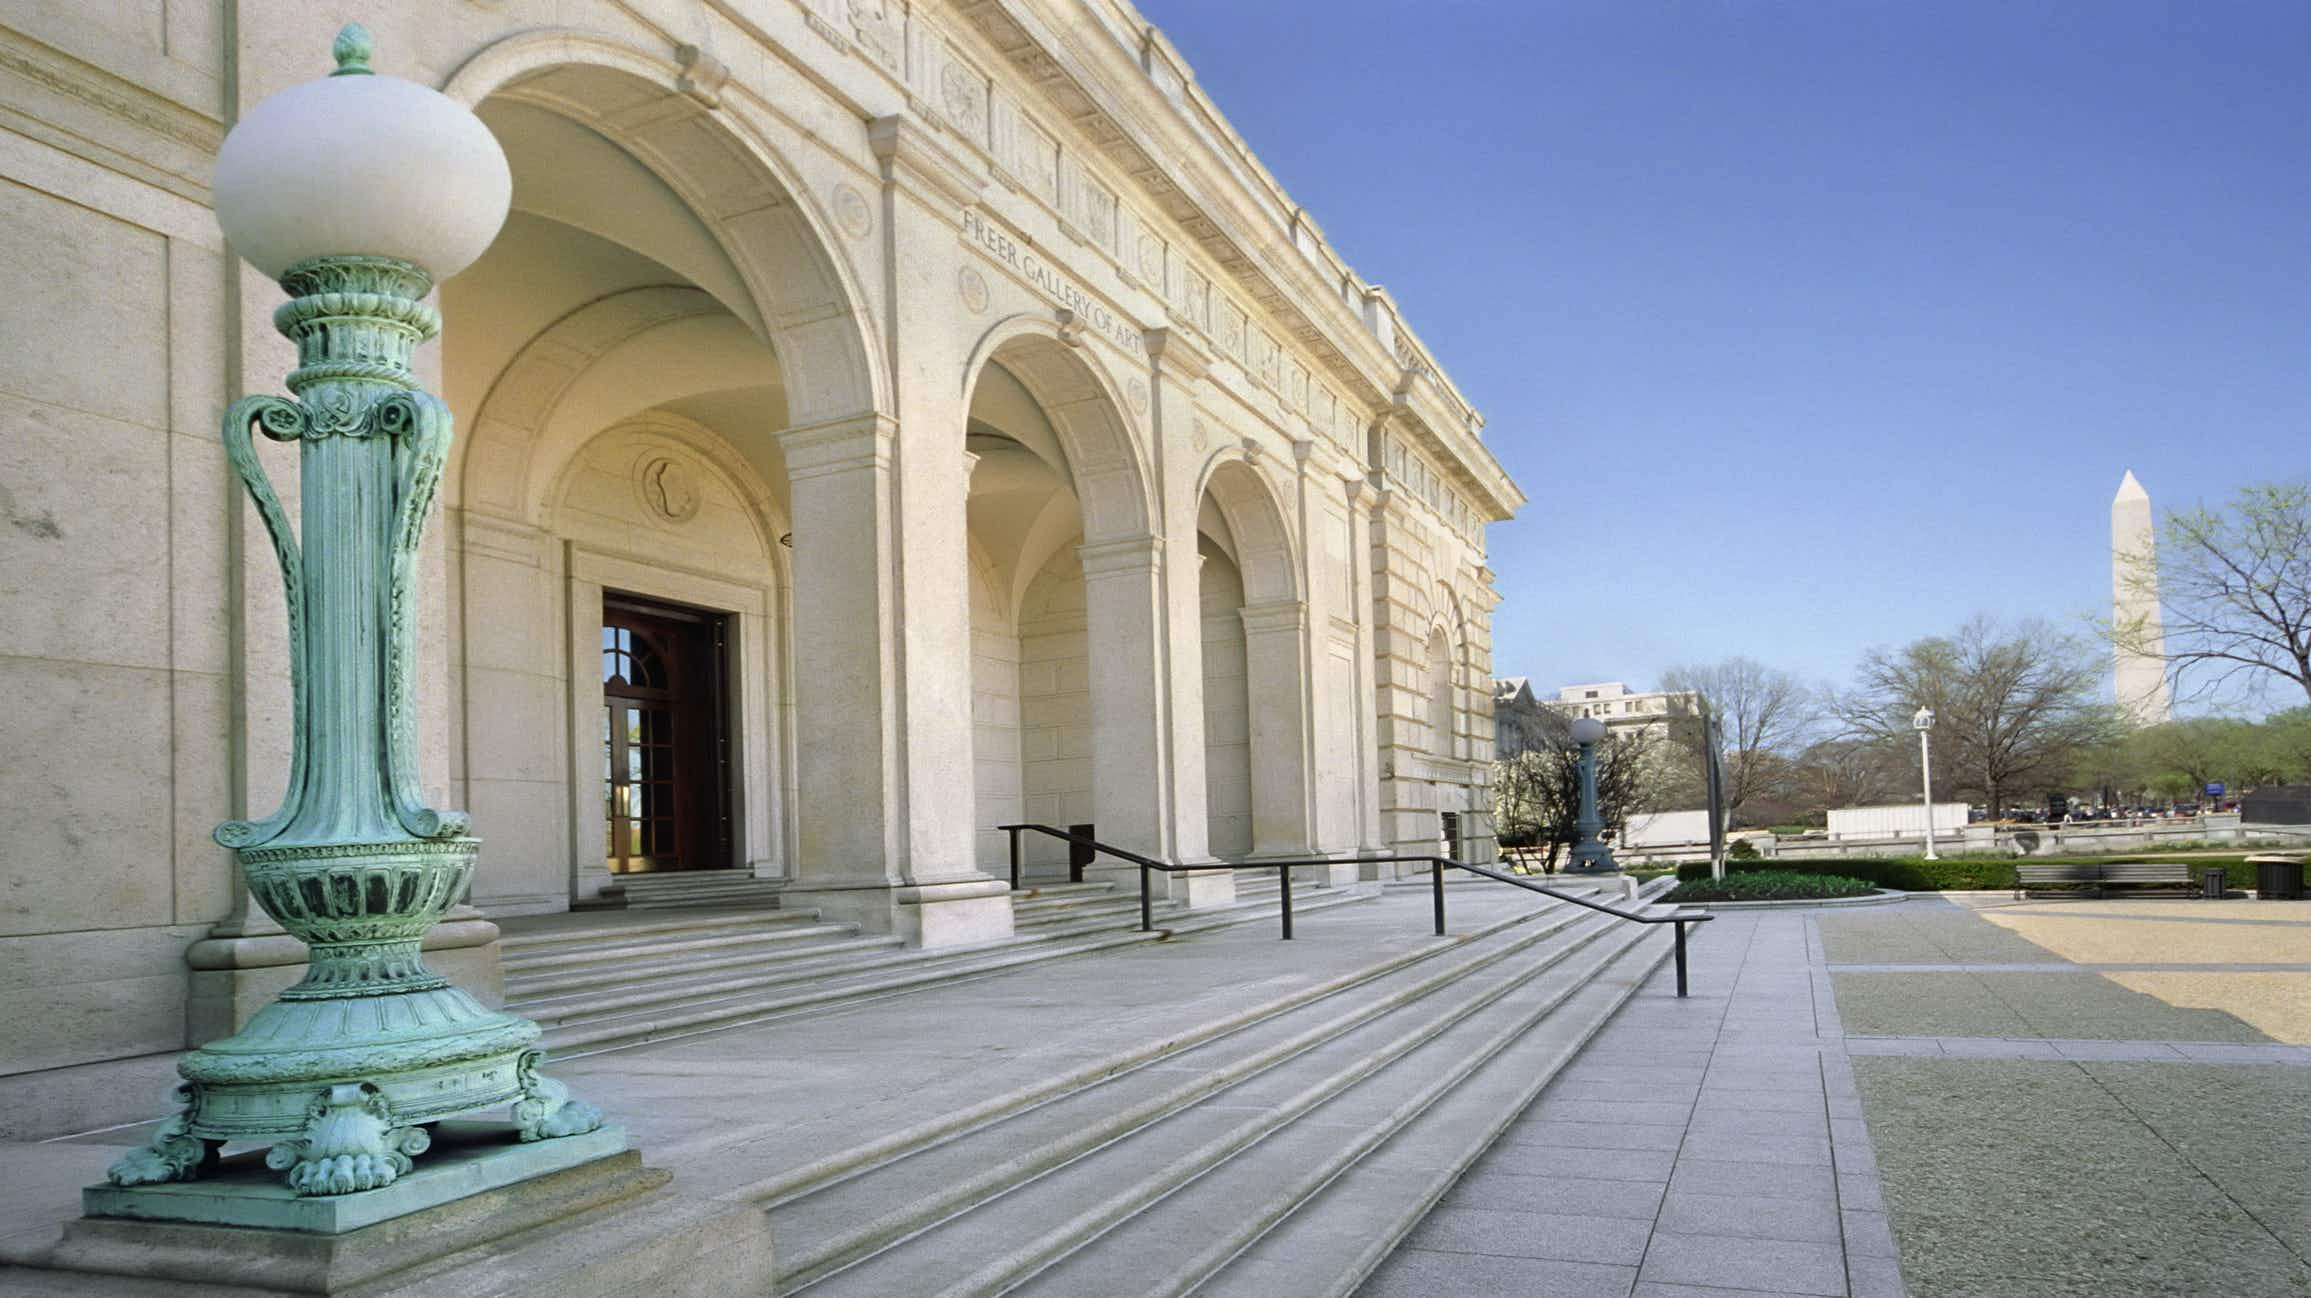 Washington DC's Asian Art museums reopen with a state-of-the-art cultural festival